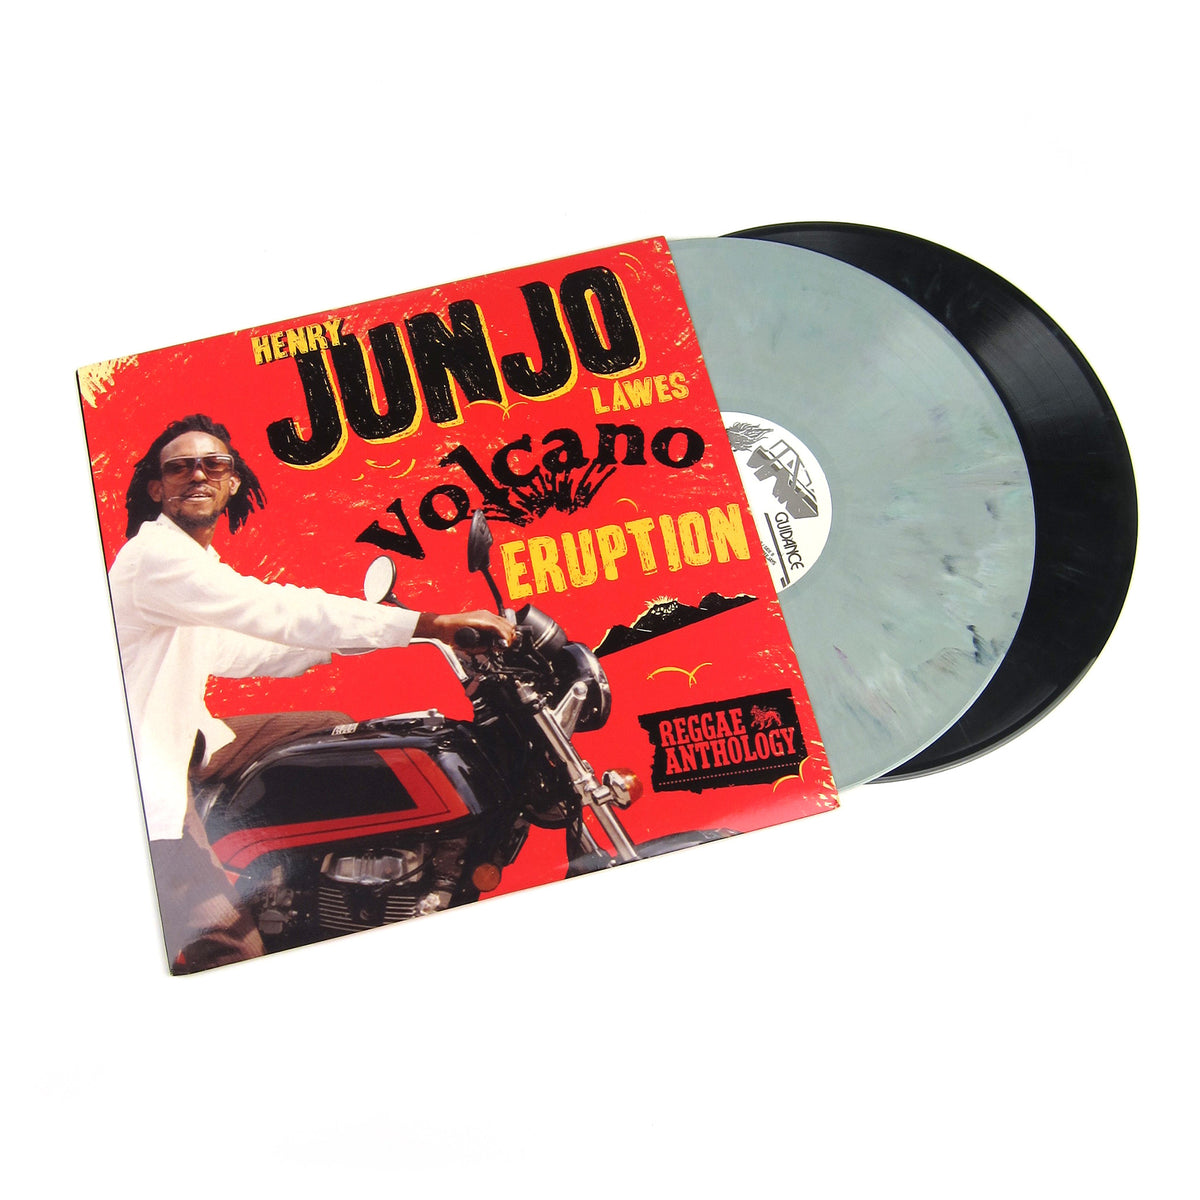 Henry Junjo Lawes: Volcano Eruption Anthology (Colored Vinyl) Vinyl 2LP